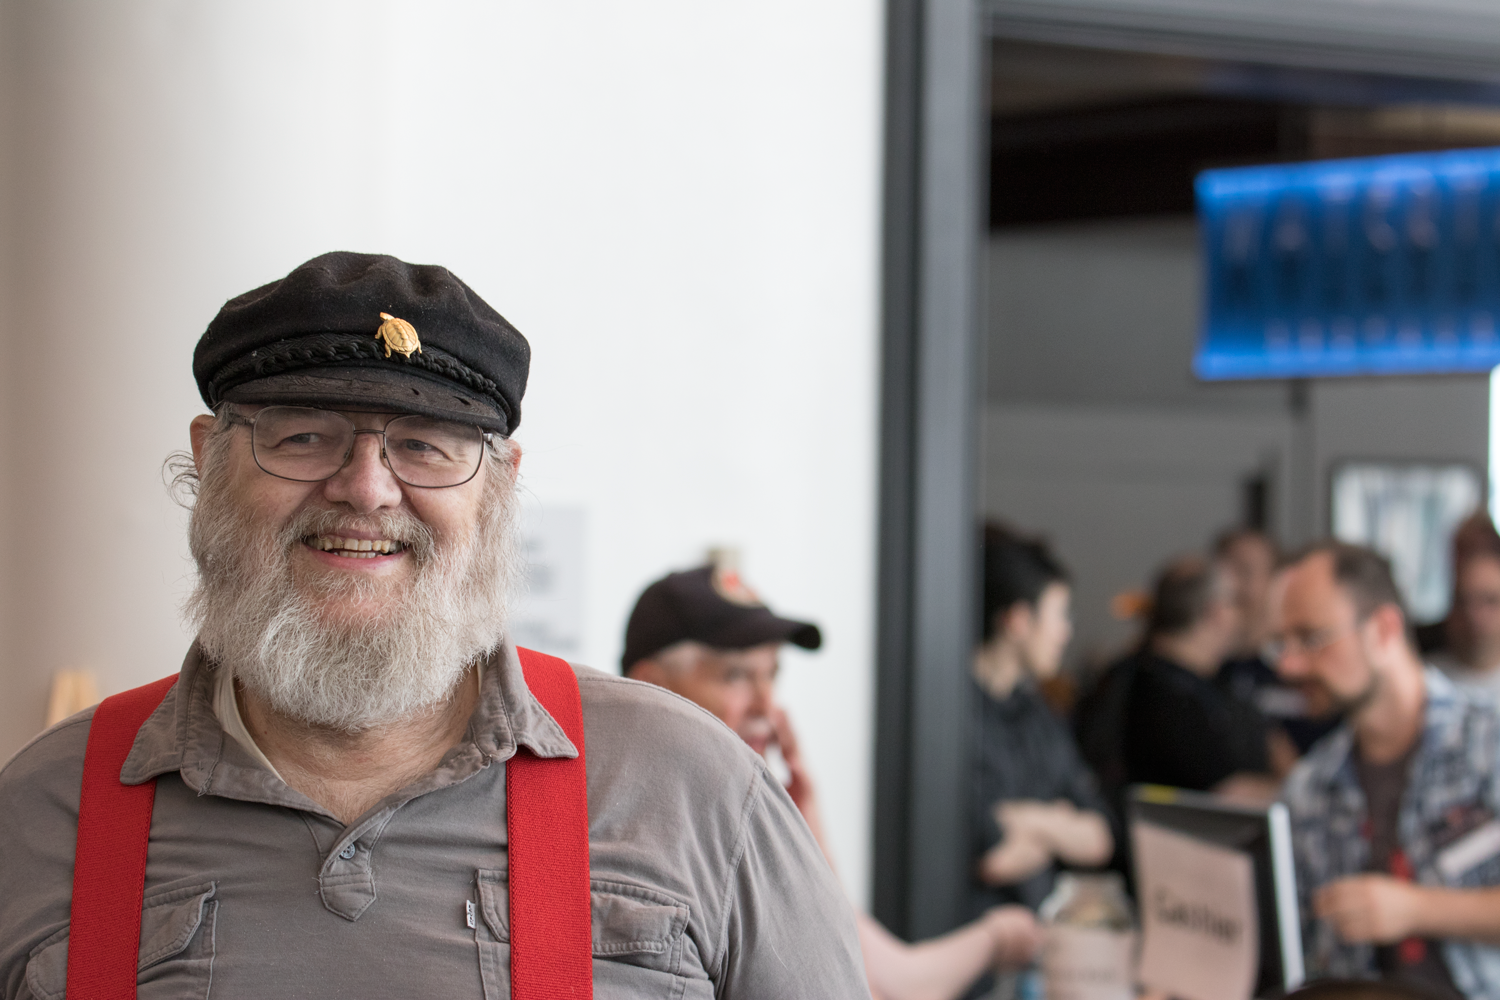 Ran into GRRM and gave him directions to registration, did not meet a grisly death. Probably my doom will come in book 6.